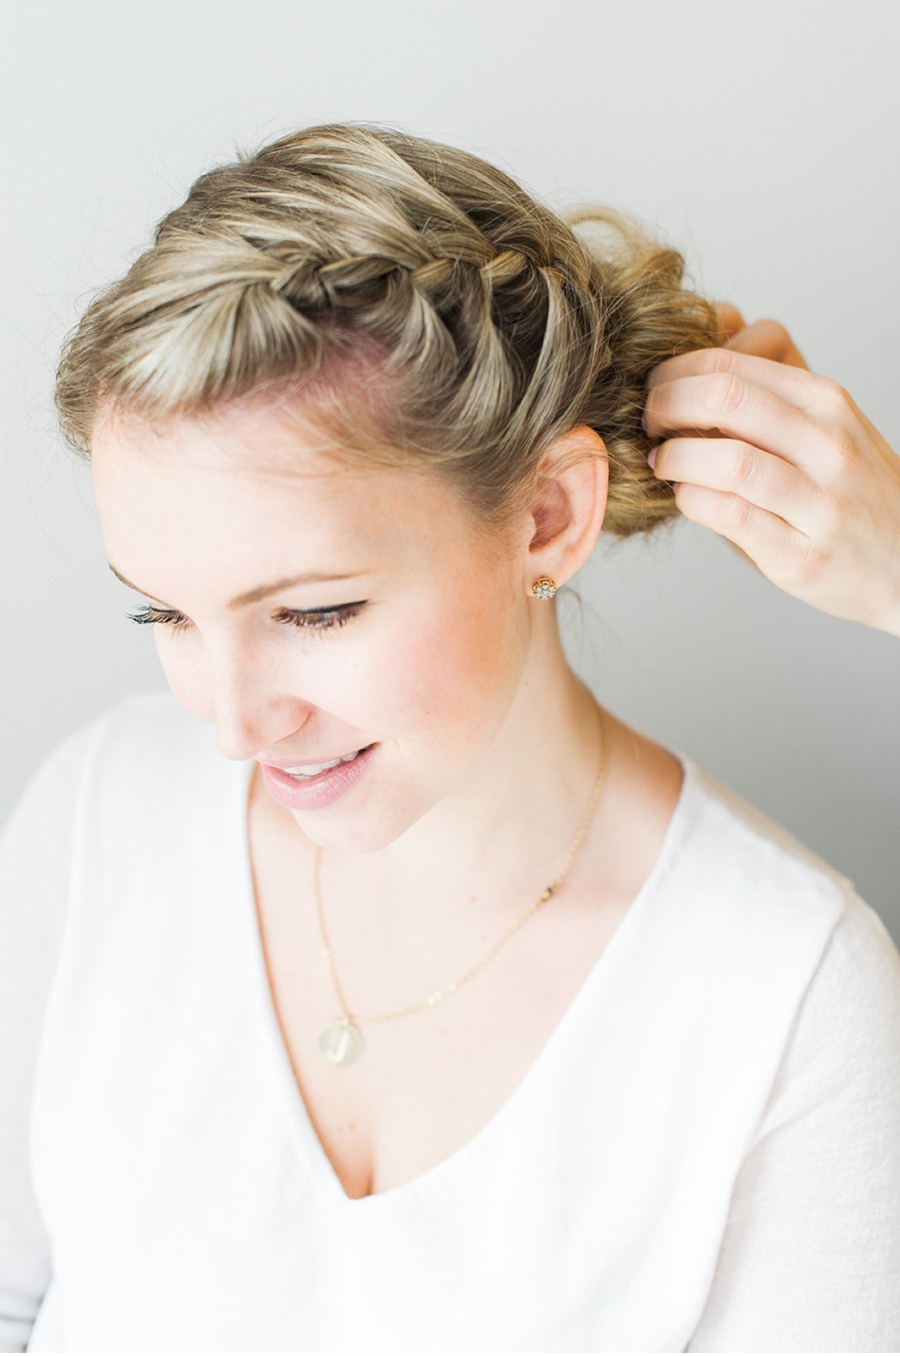 |STEP 5| Gently twist into a loose bun. You don't want to twist too tight as you want your bun to be loose, full and textured. Pin as necessary using bobby pins.